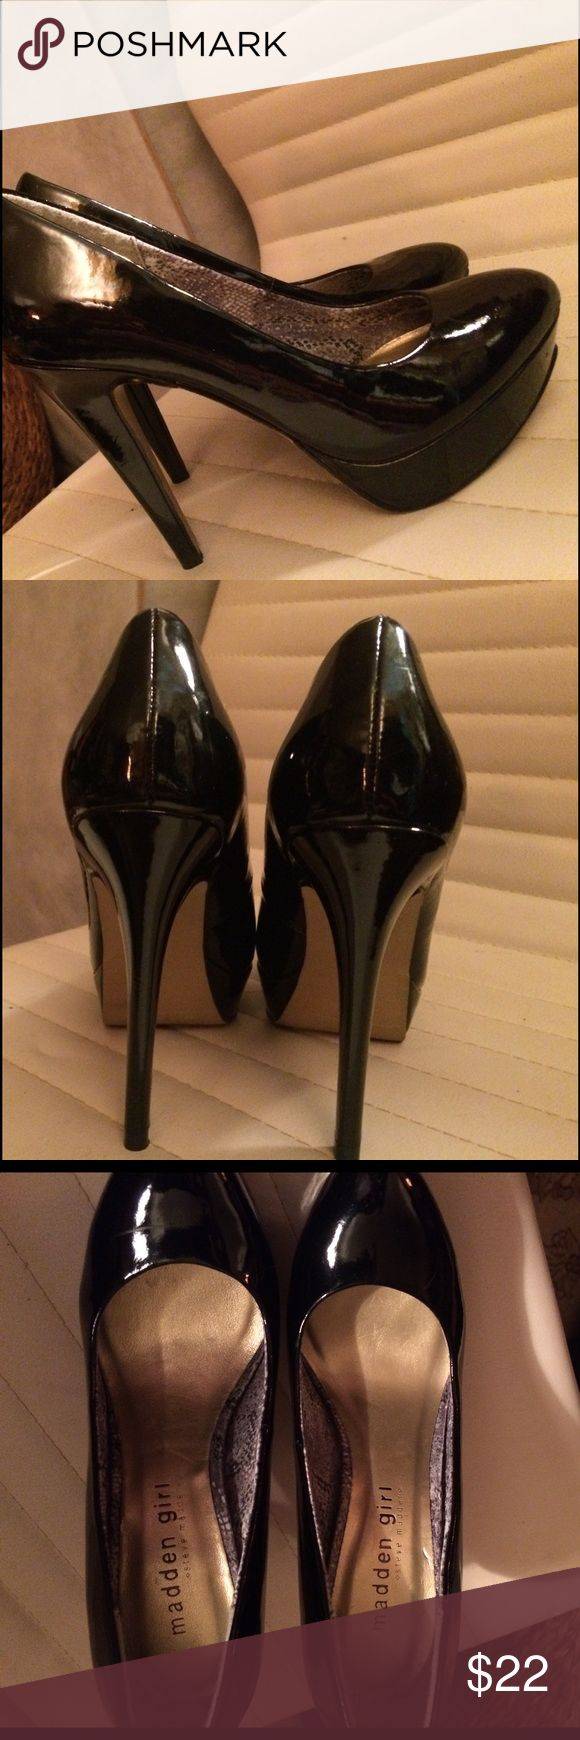 Steve Madden patent leather pumps Gorgeous Steve Madden black patent leather stelleto pumps Madden Girl Shoes Heels